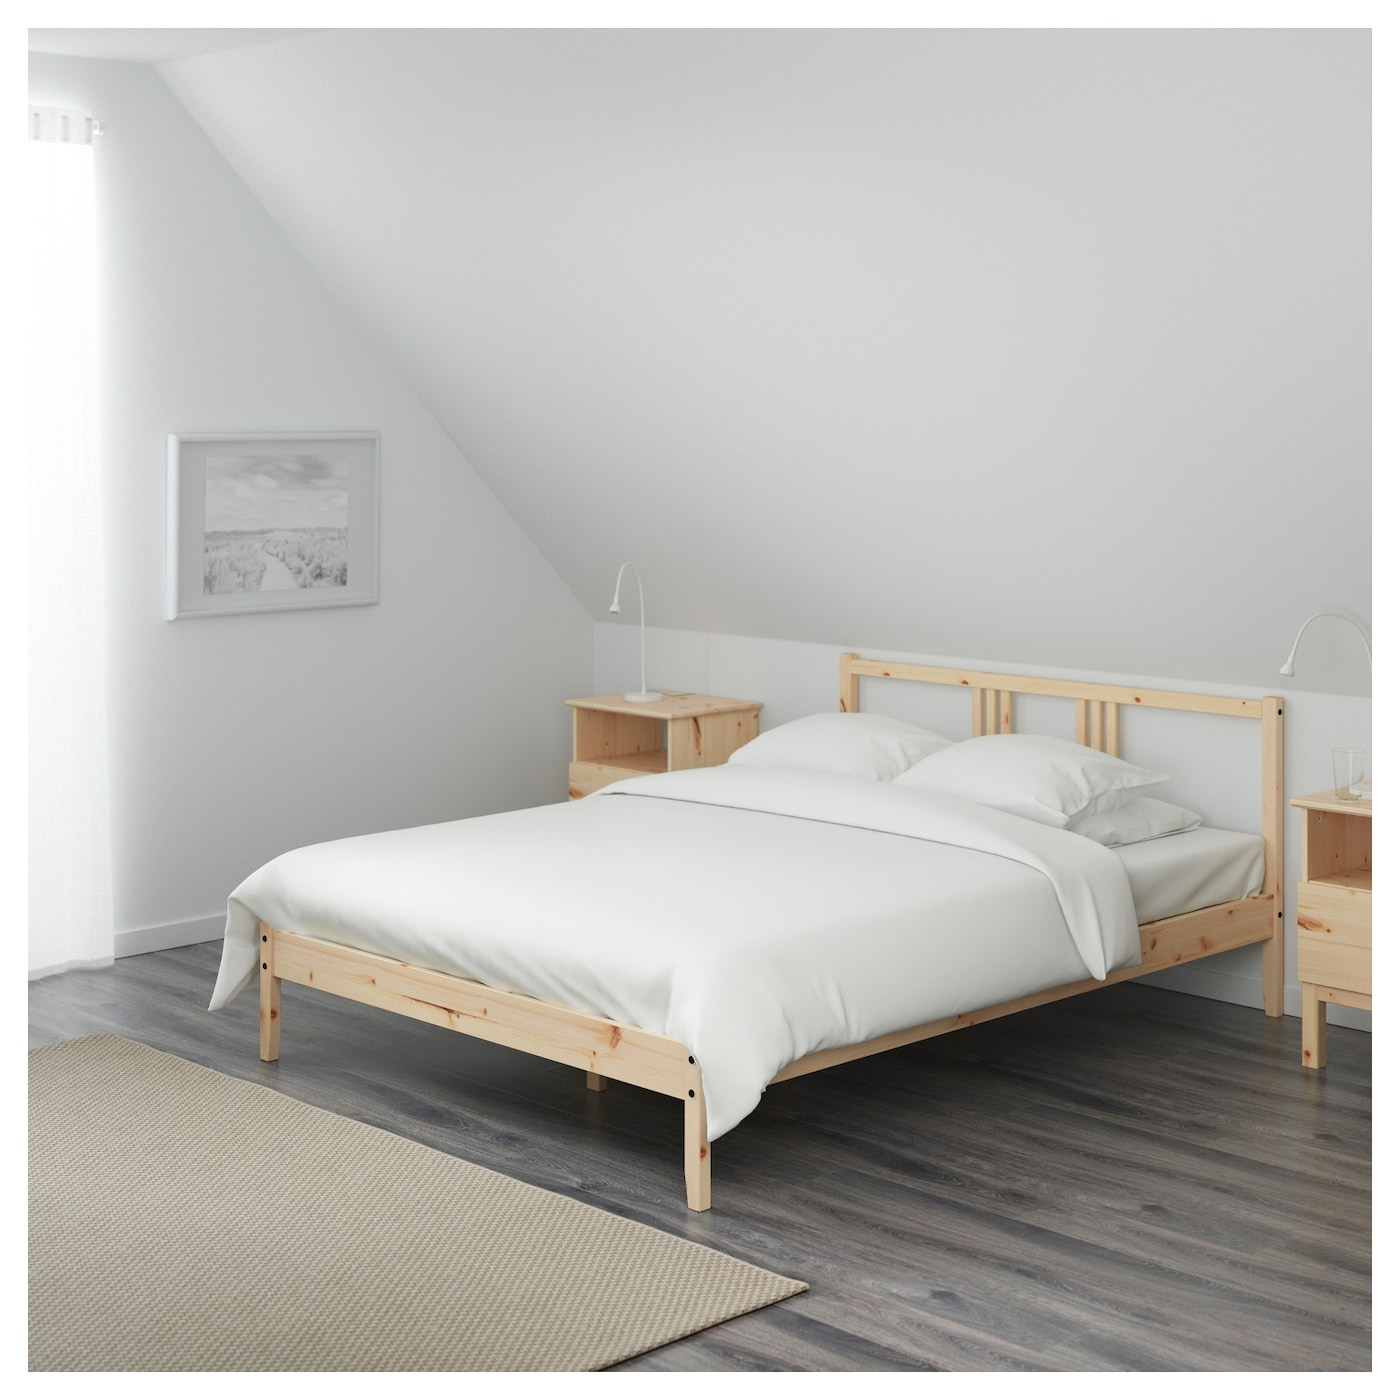 IKEA FJELLSE bed frame Made of solid wood, which is a hardwearing and warm natural material.